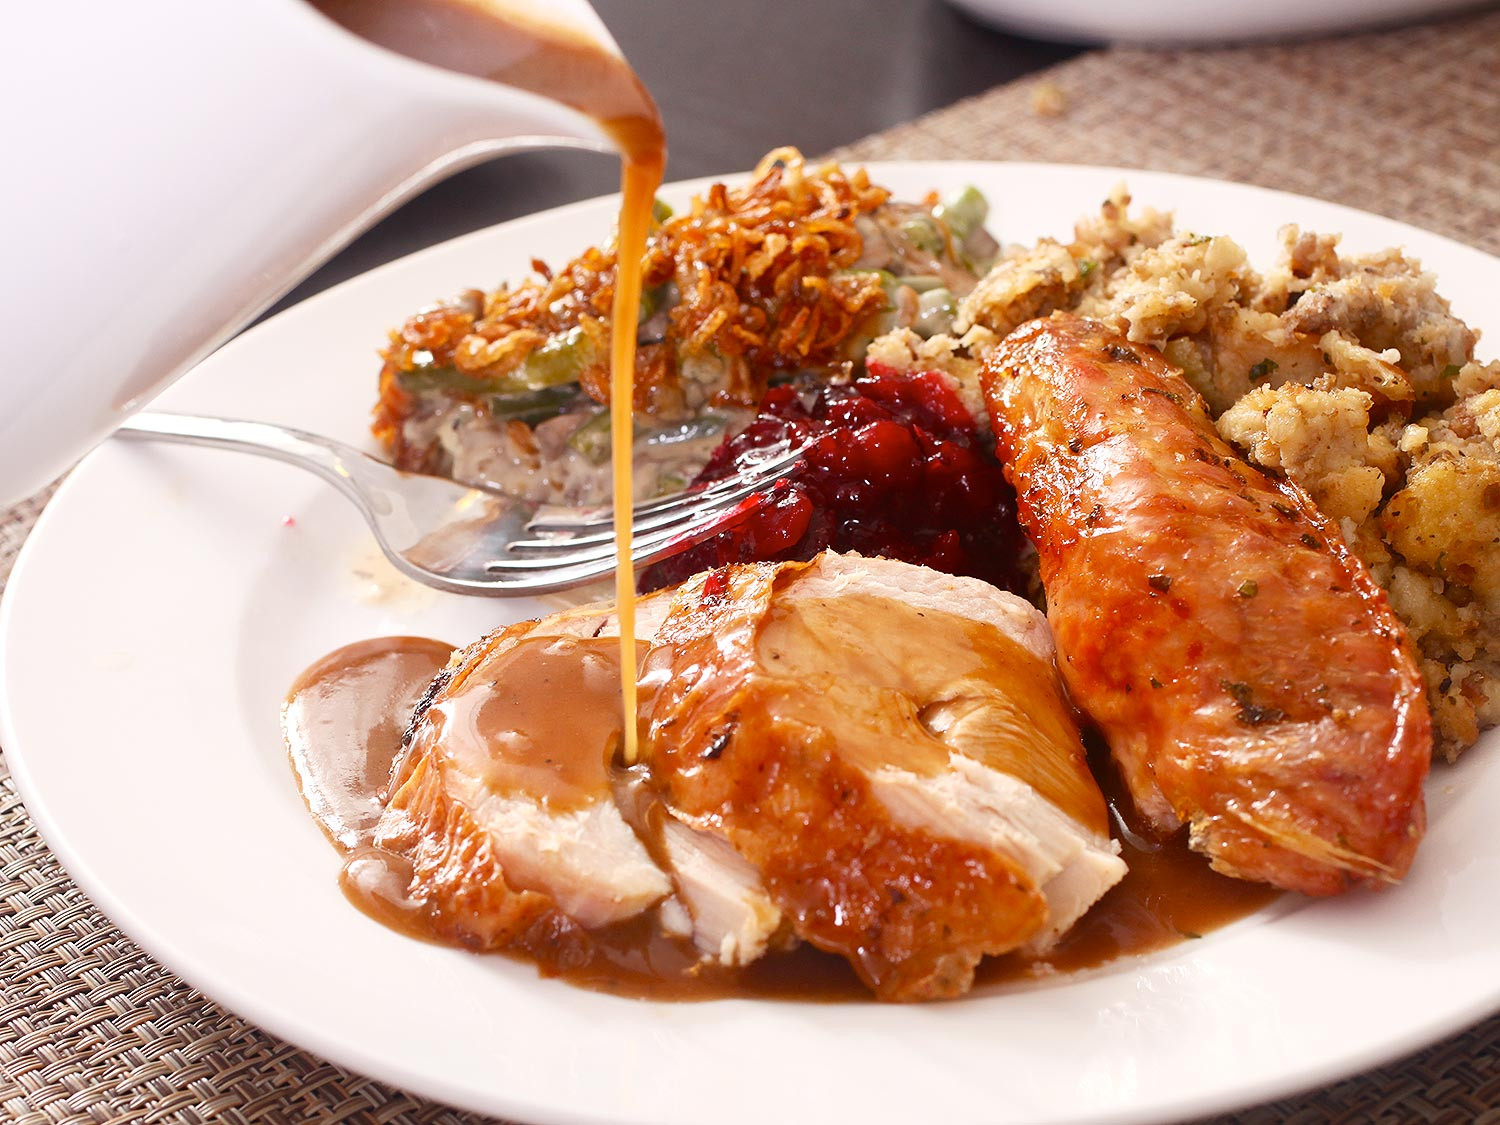 Best Turkey To Buy For Thanksgiving  The Food Lab s Definitive Guide to Buying Prepping